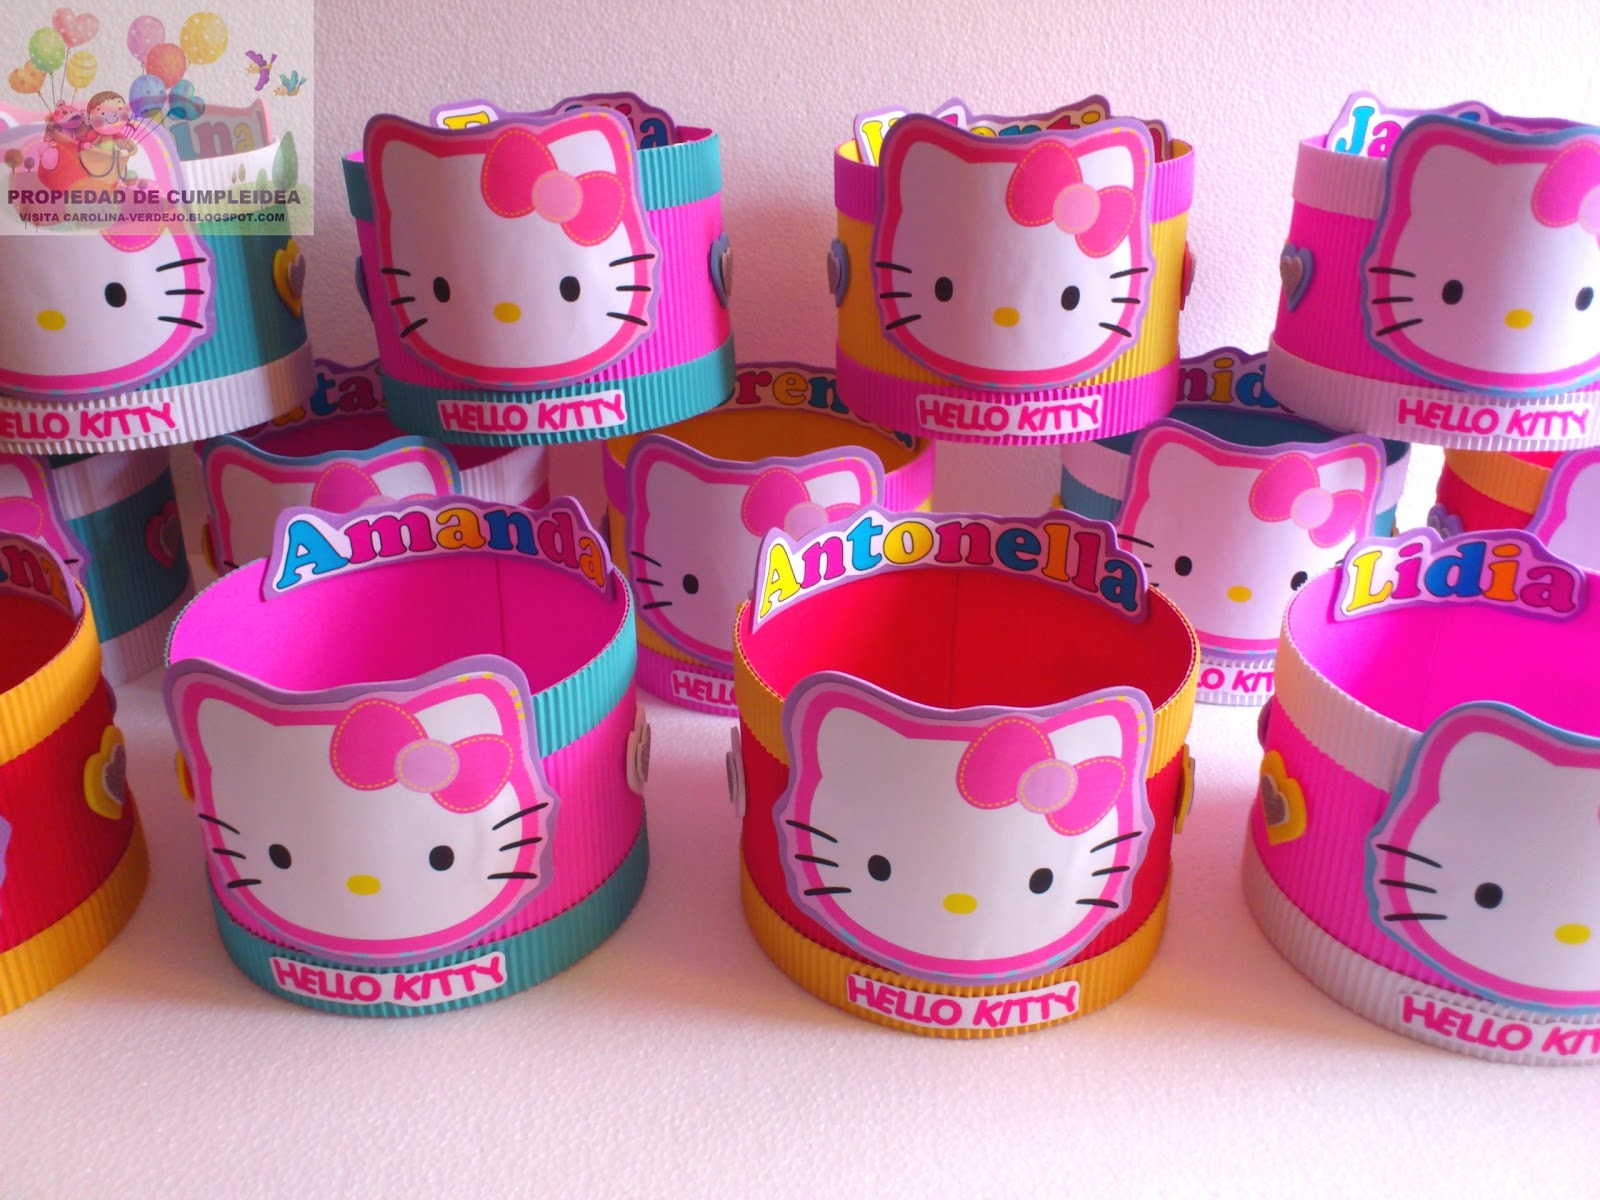 DECORACIONES INFANTILES: HELLO KITTY